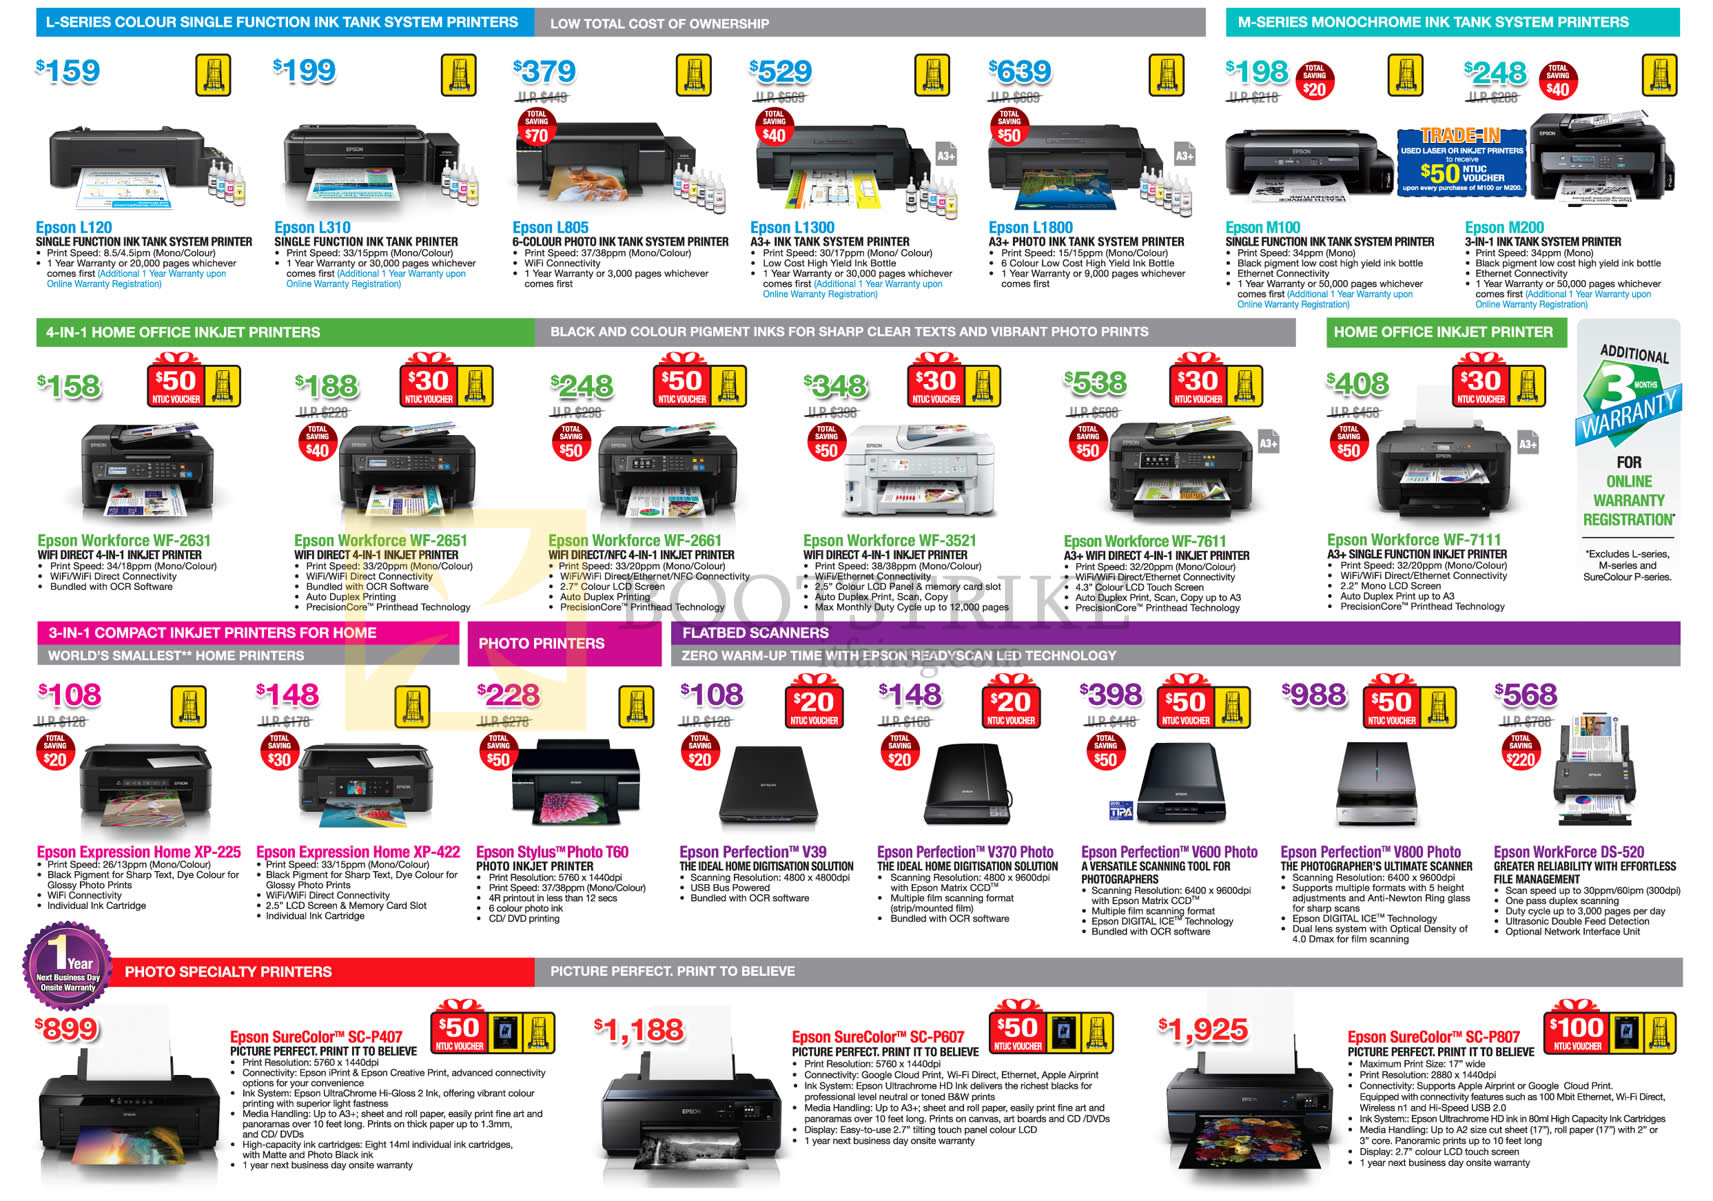 PC SHOW 2016 price list image brochure of Epson Printers, Scanners, L120, L310, L805, L1300, Workforce WF-2631, 2651, 2661, Expression Home XP-225, 422, Stylus Photo T60, Perfection V39, V370 Photo